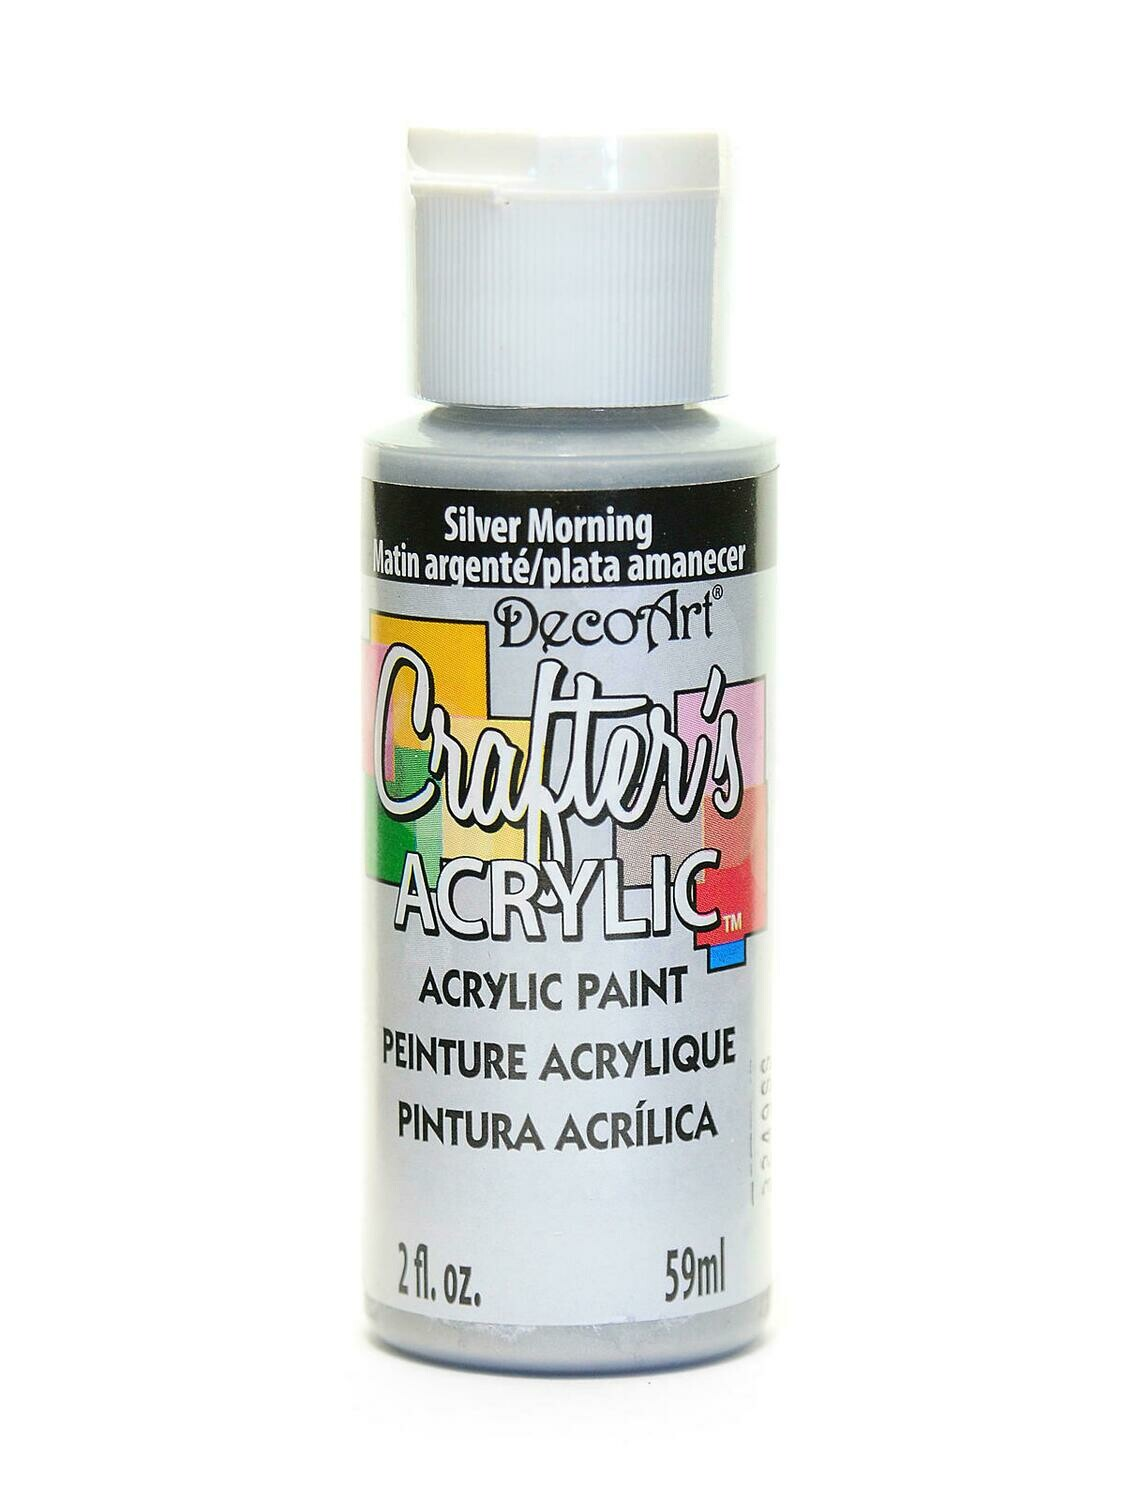 Decoart; Crafter's Acrylic Paint, 2 Oz. Bottles, Silver Morning